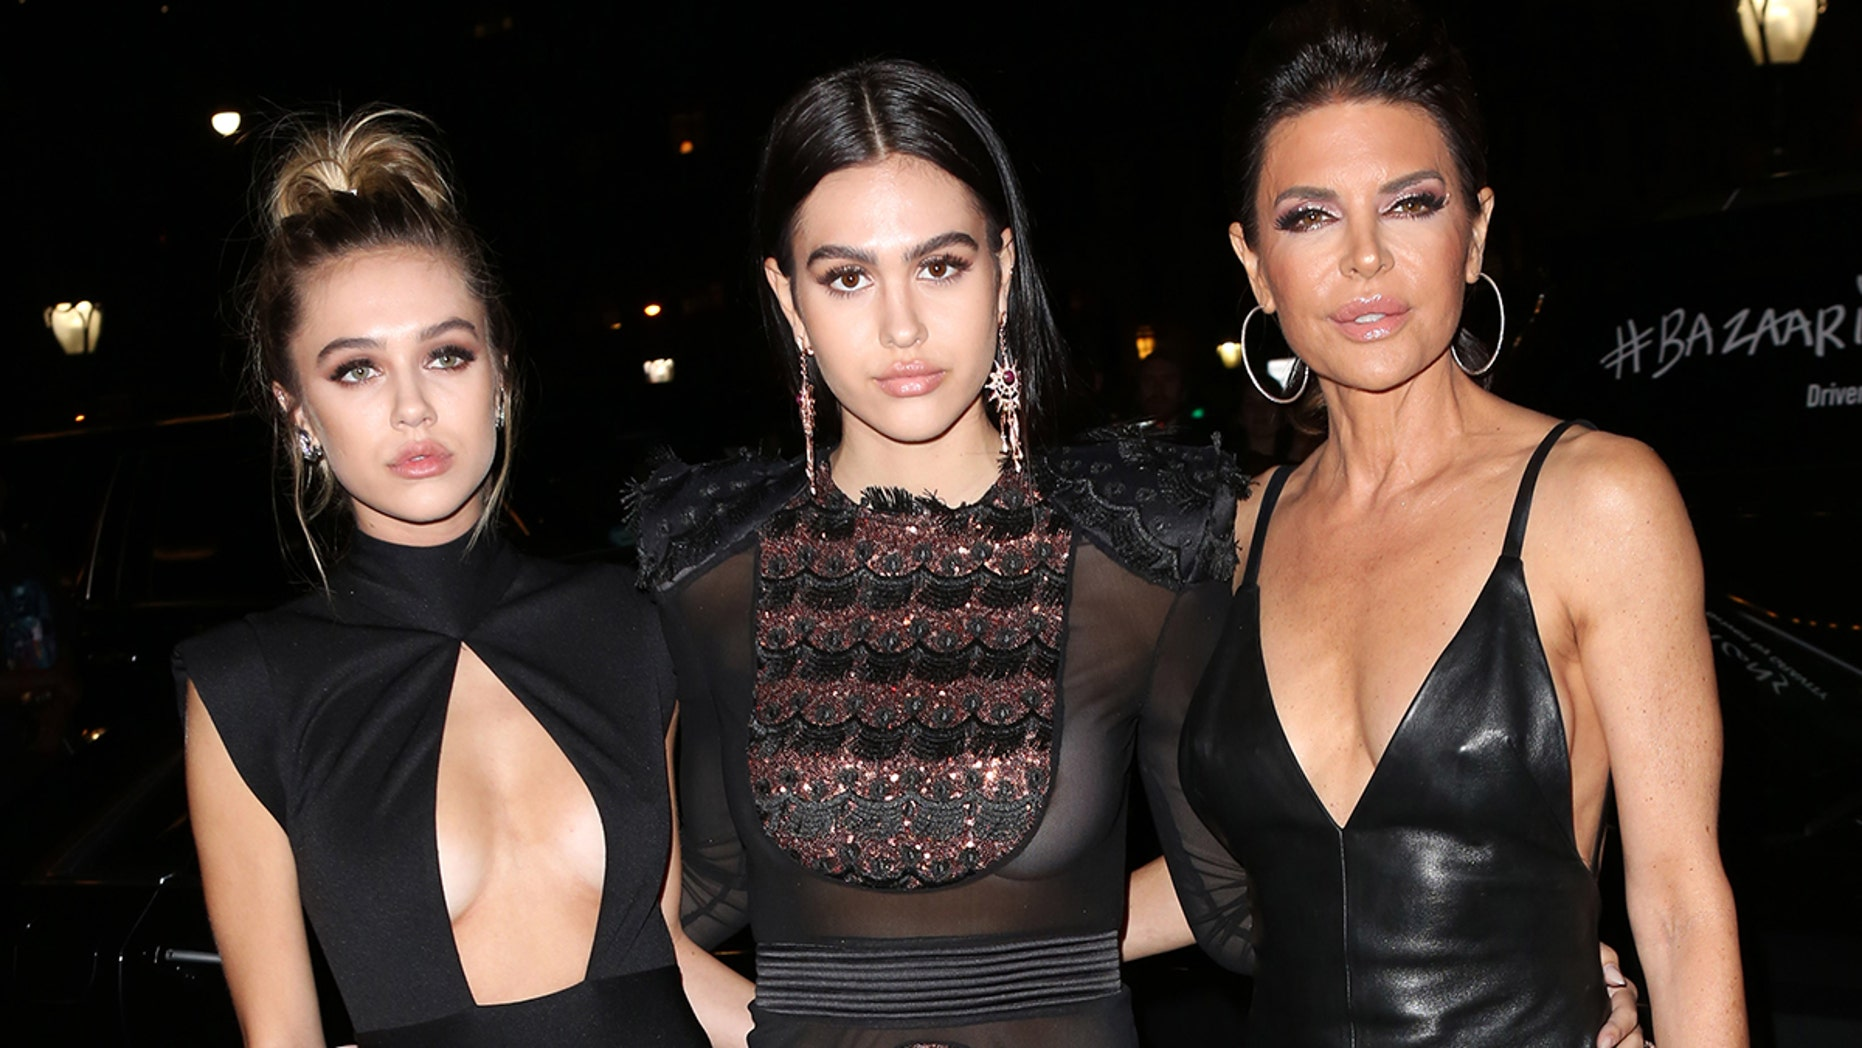 Lisa Rinna and her daughters Delilah Belle and Amelia Gray Hamlin at the 2018 Harper's BAZAAR Icons event.